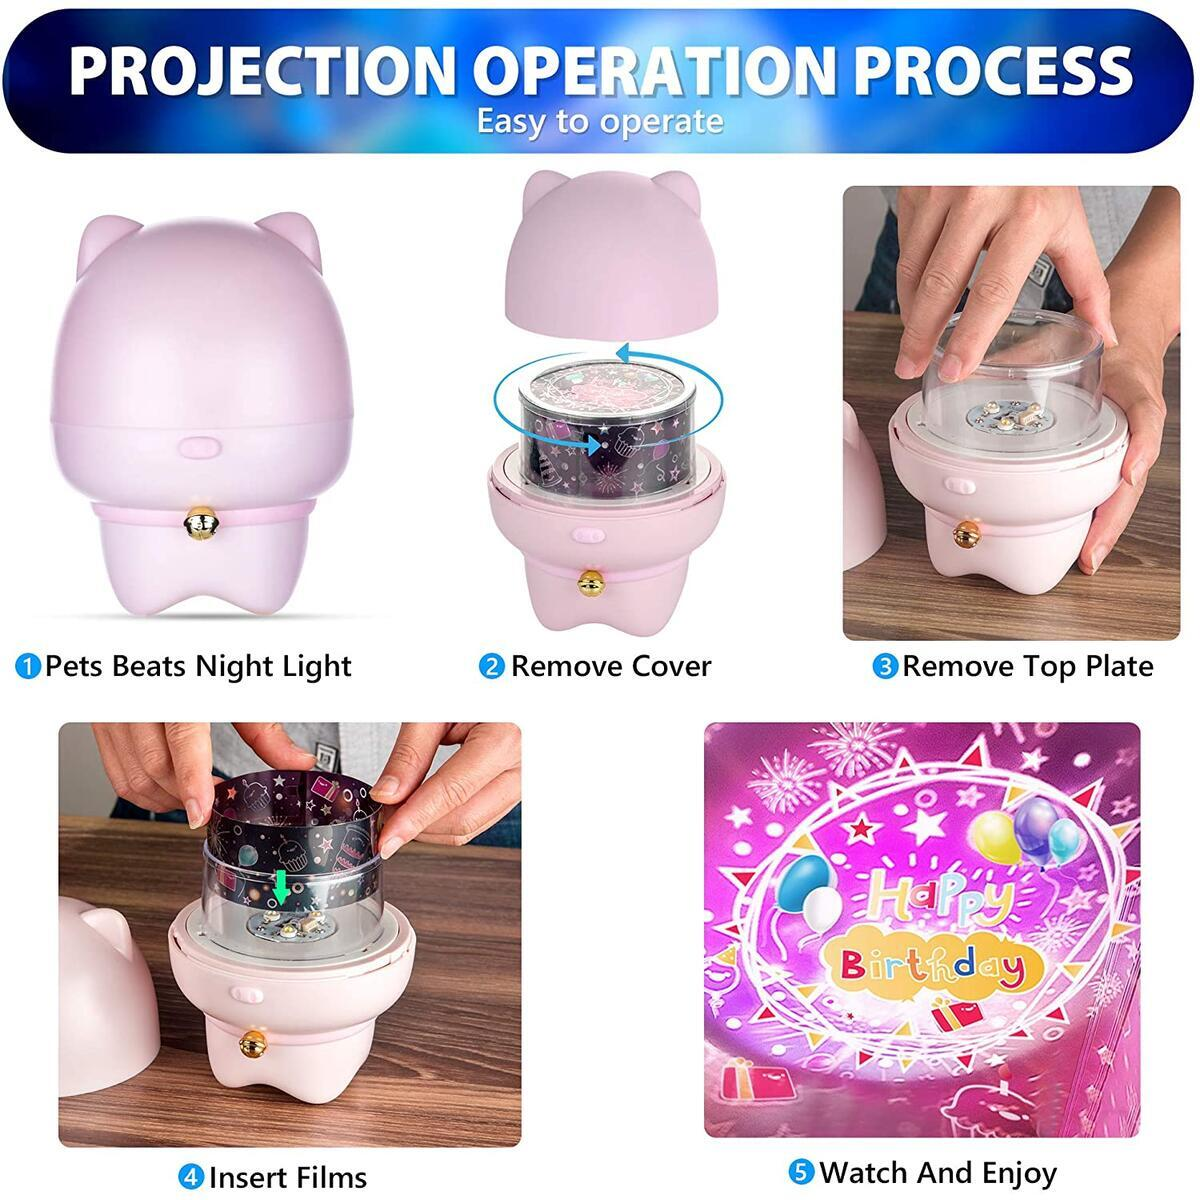 PETS BEATS Night Light Projector for Kids - 360 Rotating with 6 Interchangeable Projecting Films, Remote Control, USB - Kids Night Light with Bluetooth Speaker - Soothes Toddlers and Babies - Pink